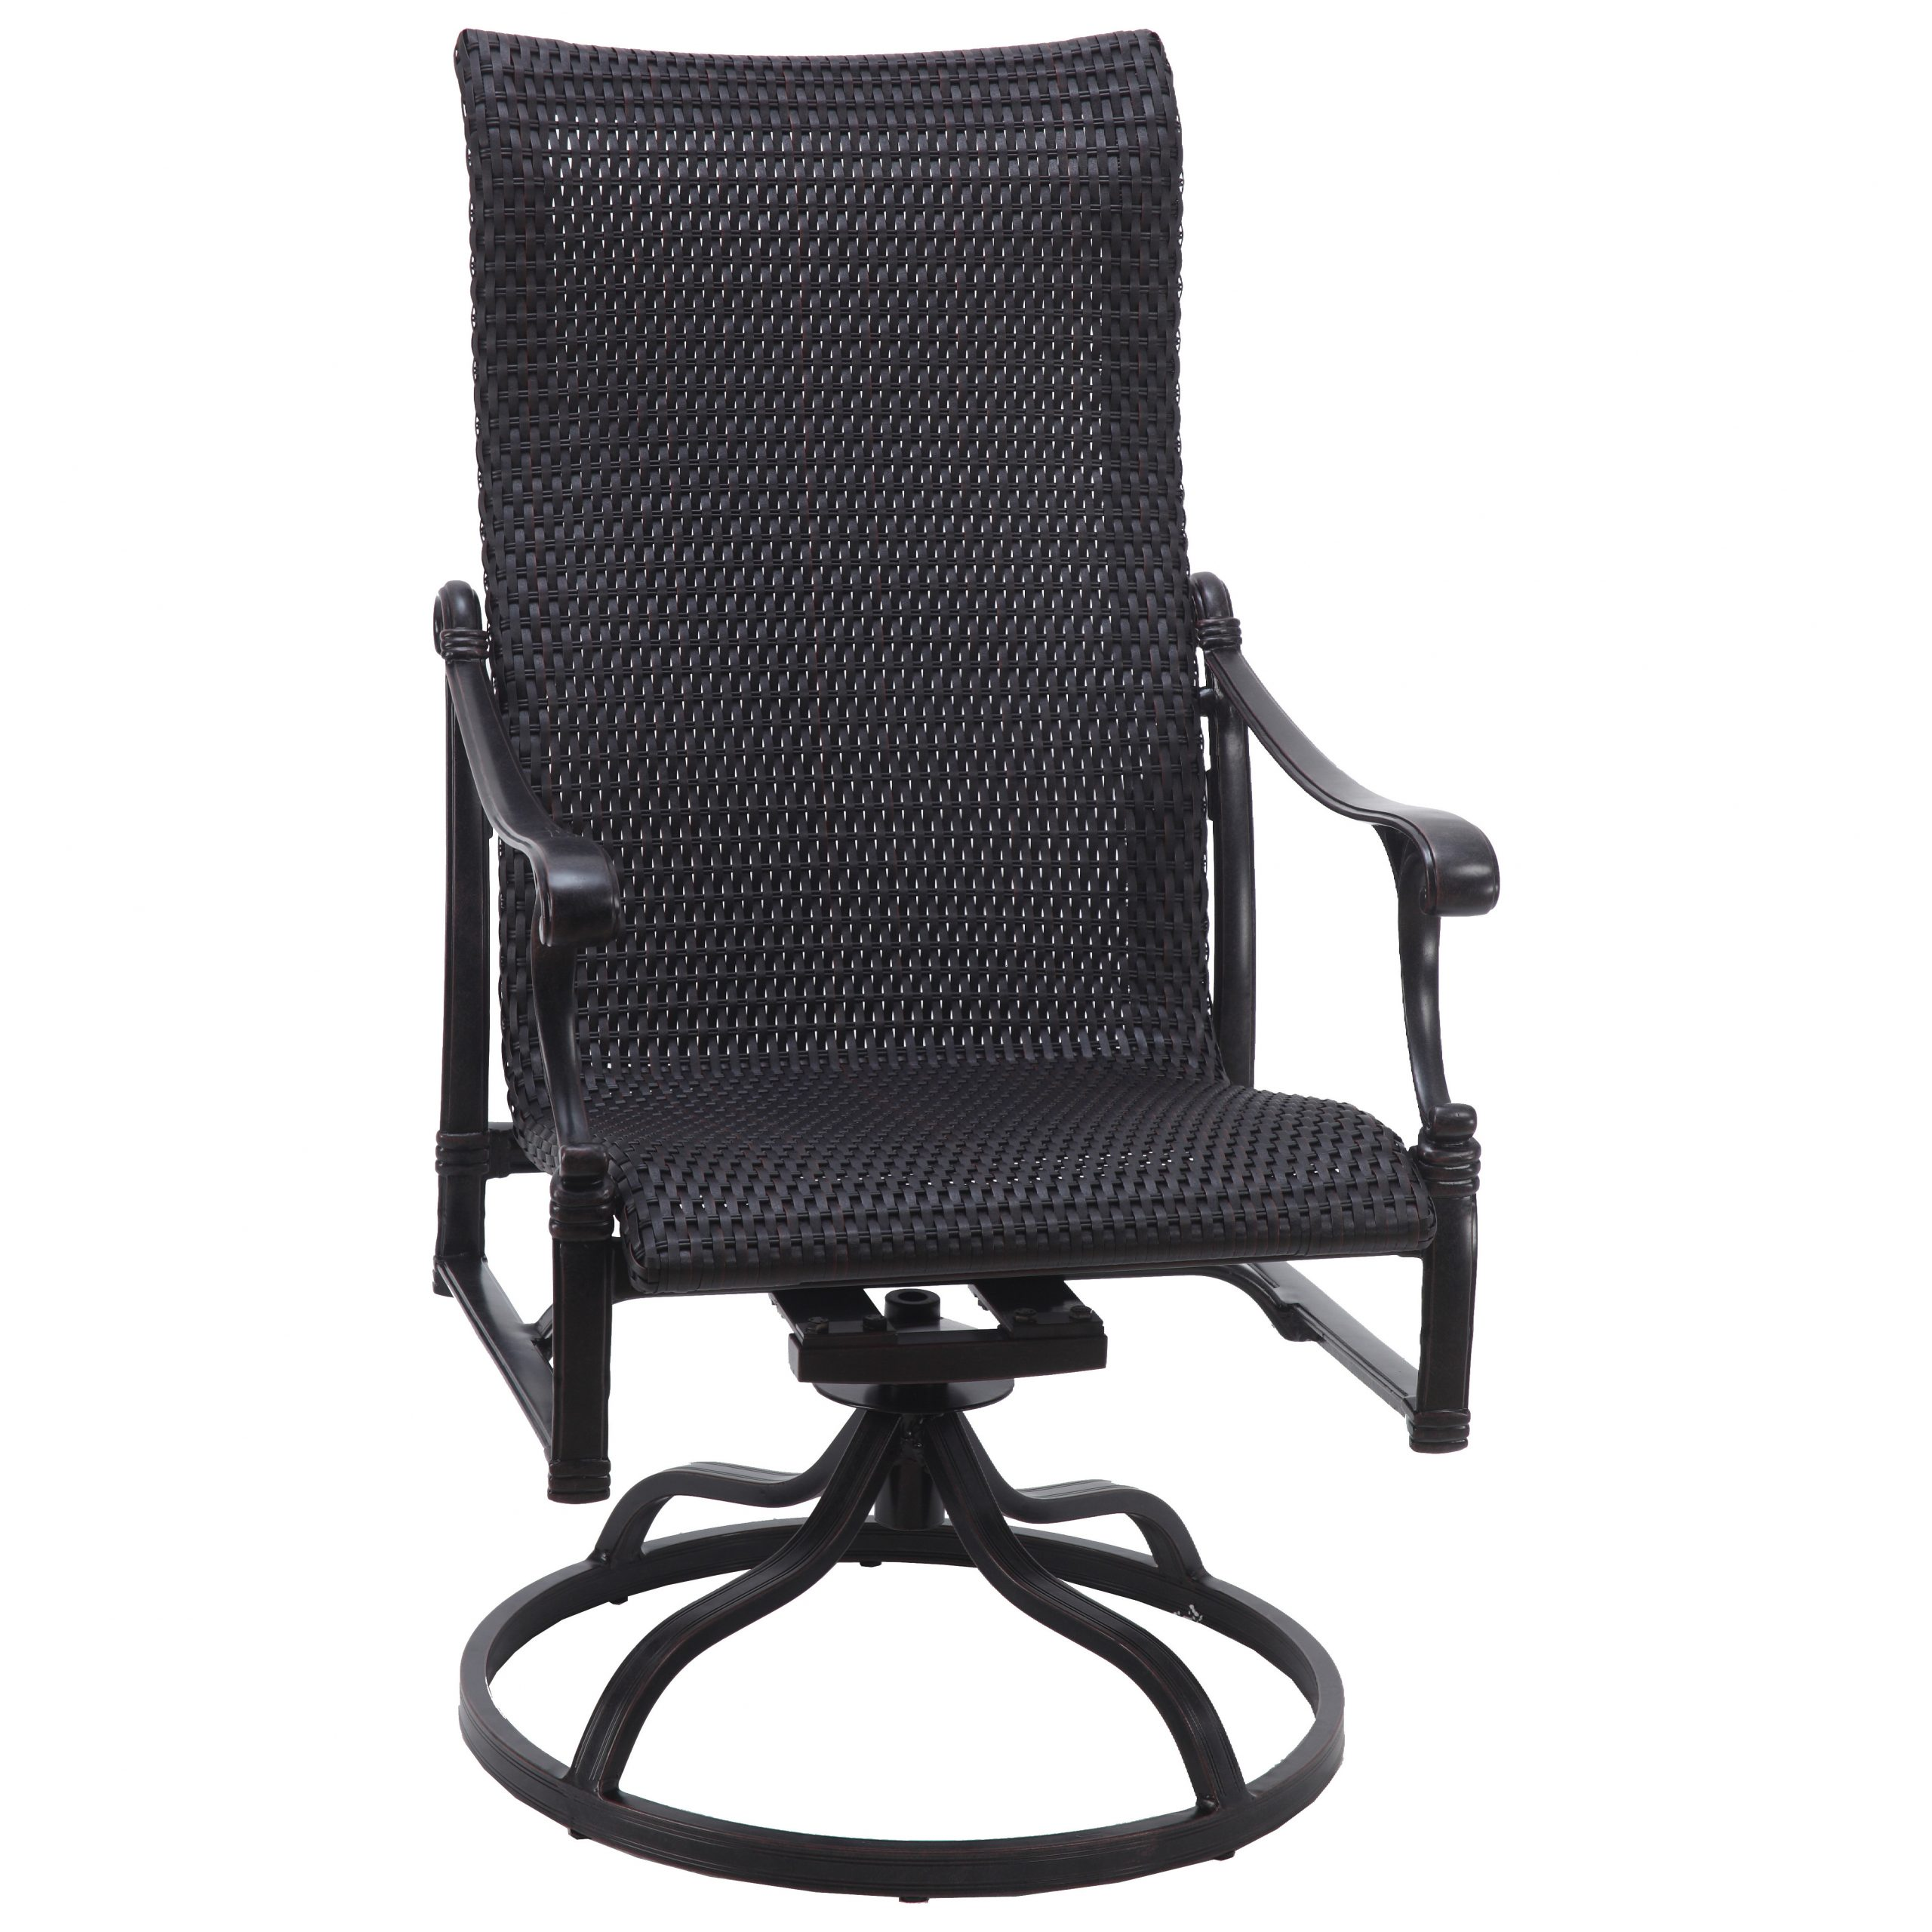 Gensun Michigan Woven Cast Aluminum High Back Swivel Rocker With Favorite Woven High Back Swivel Chairs (View 5 of 30)